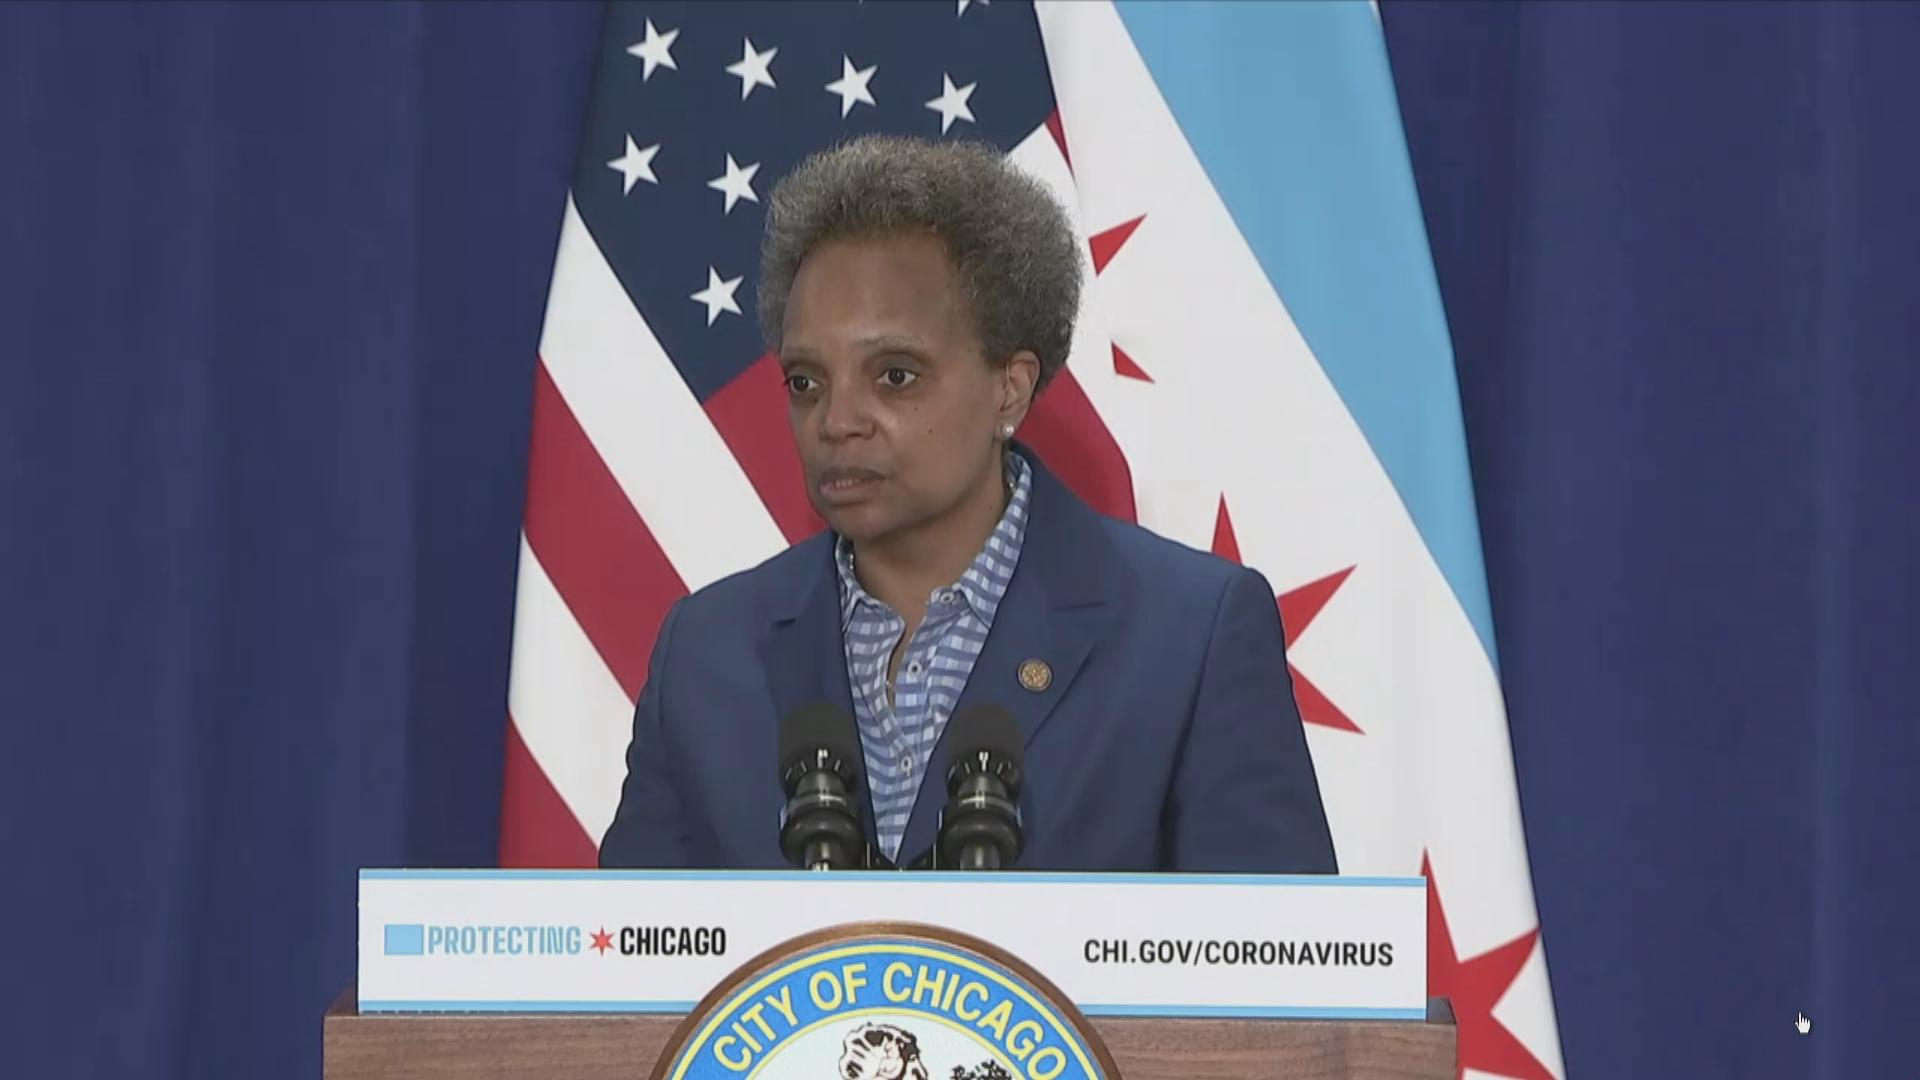 Mayor Lori Lightfoot speaks to the media following a Chicago City Council meeting Wednesday, May 20, 2020.